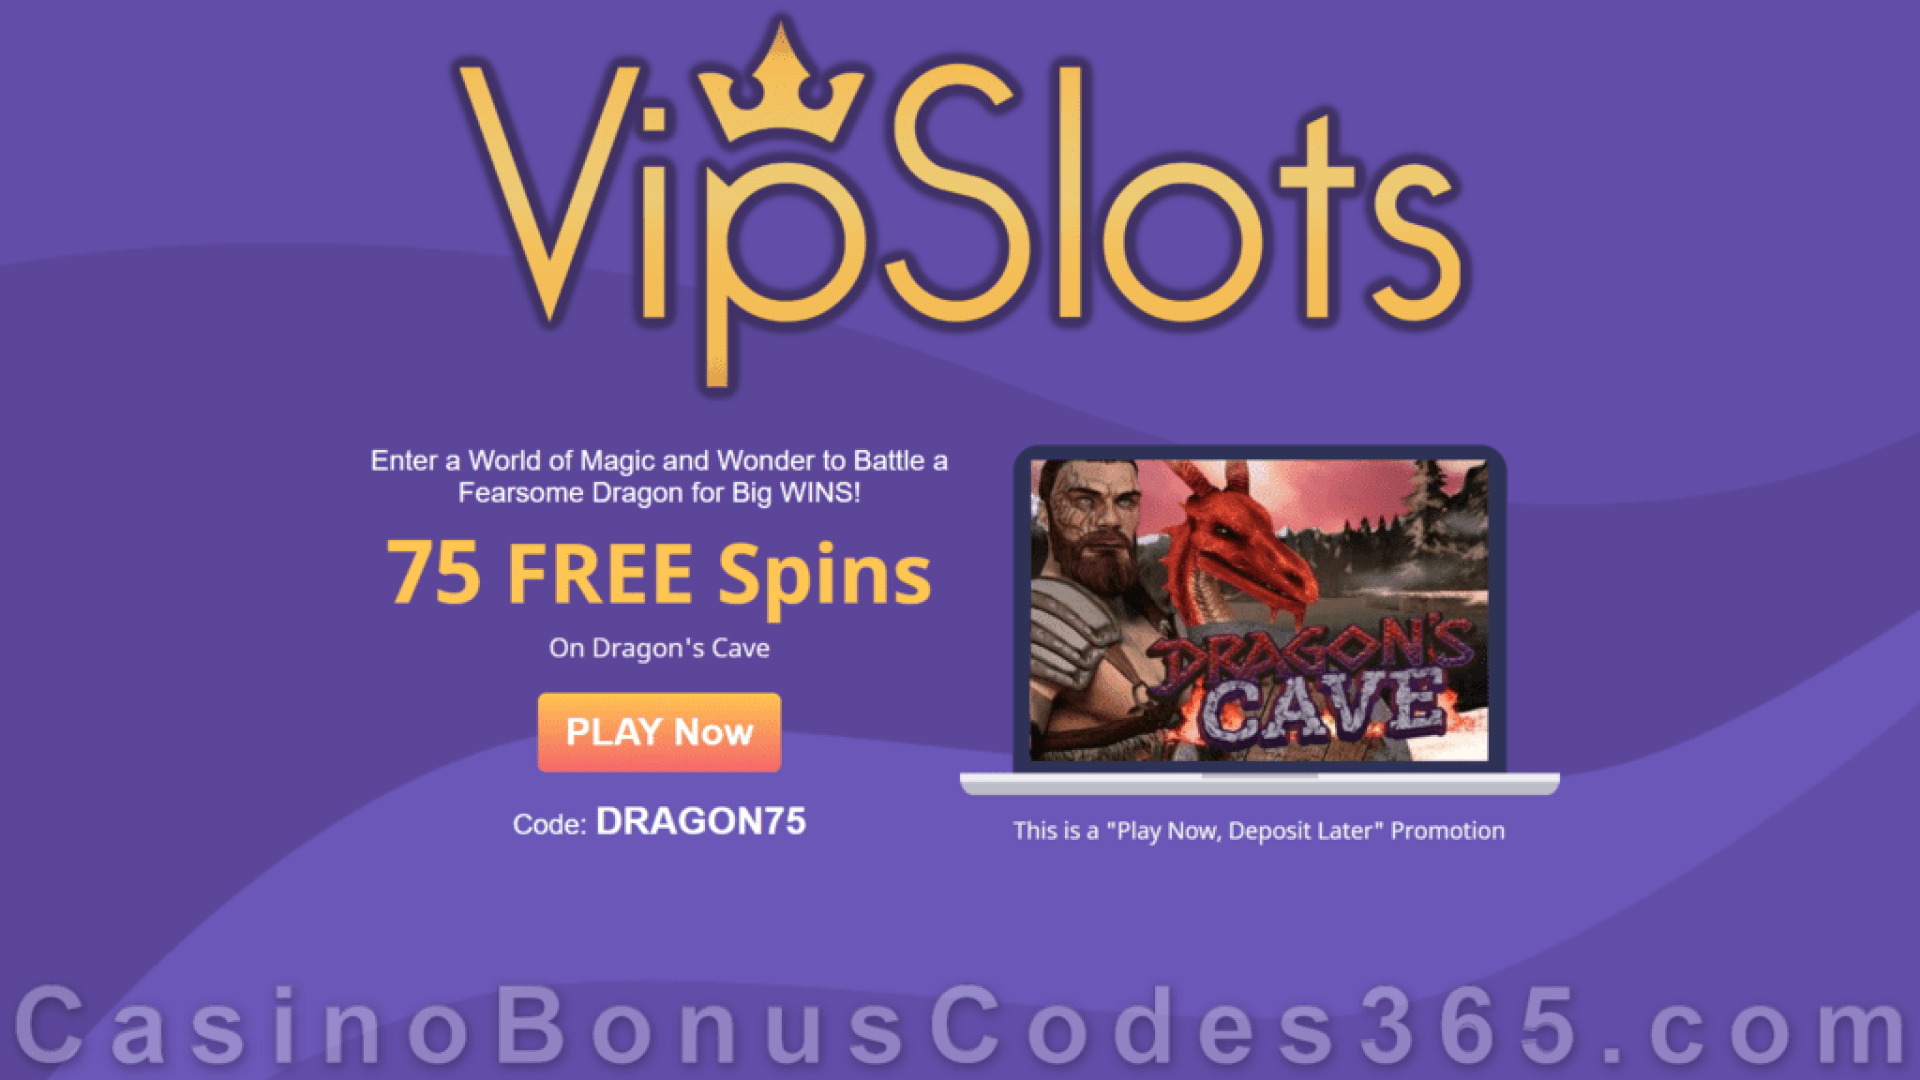 VipSlots Casino 75 No Deposit FREE Spins on Arrow's Edge Dragon's Cave August Promo